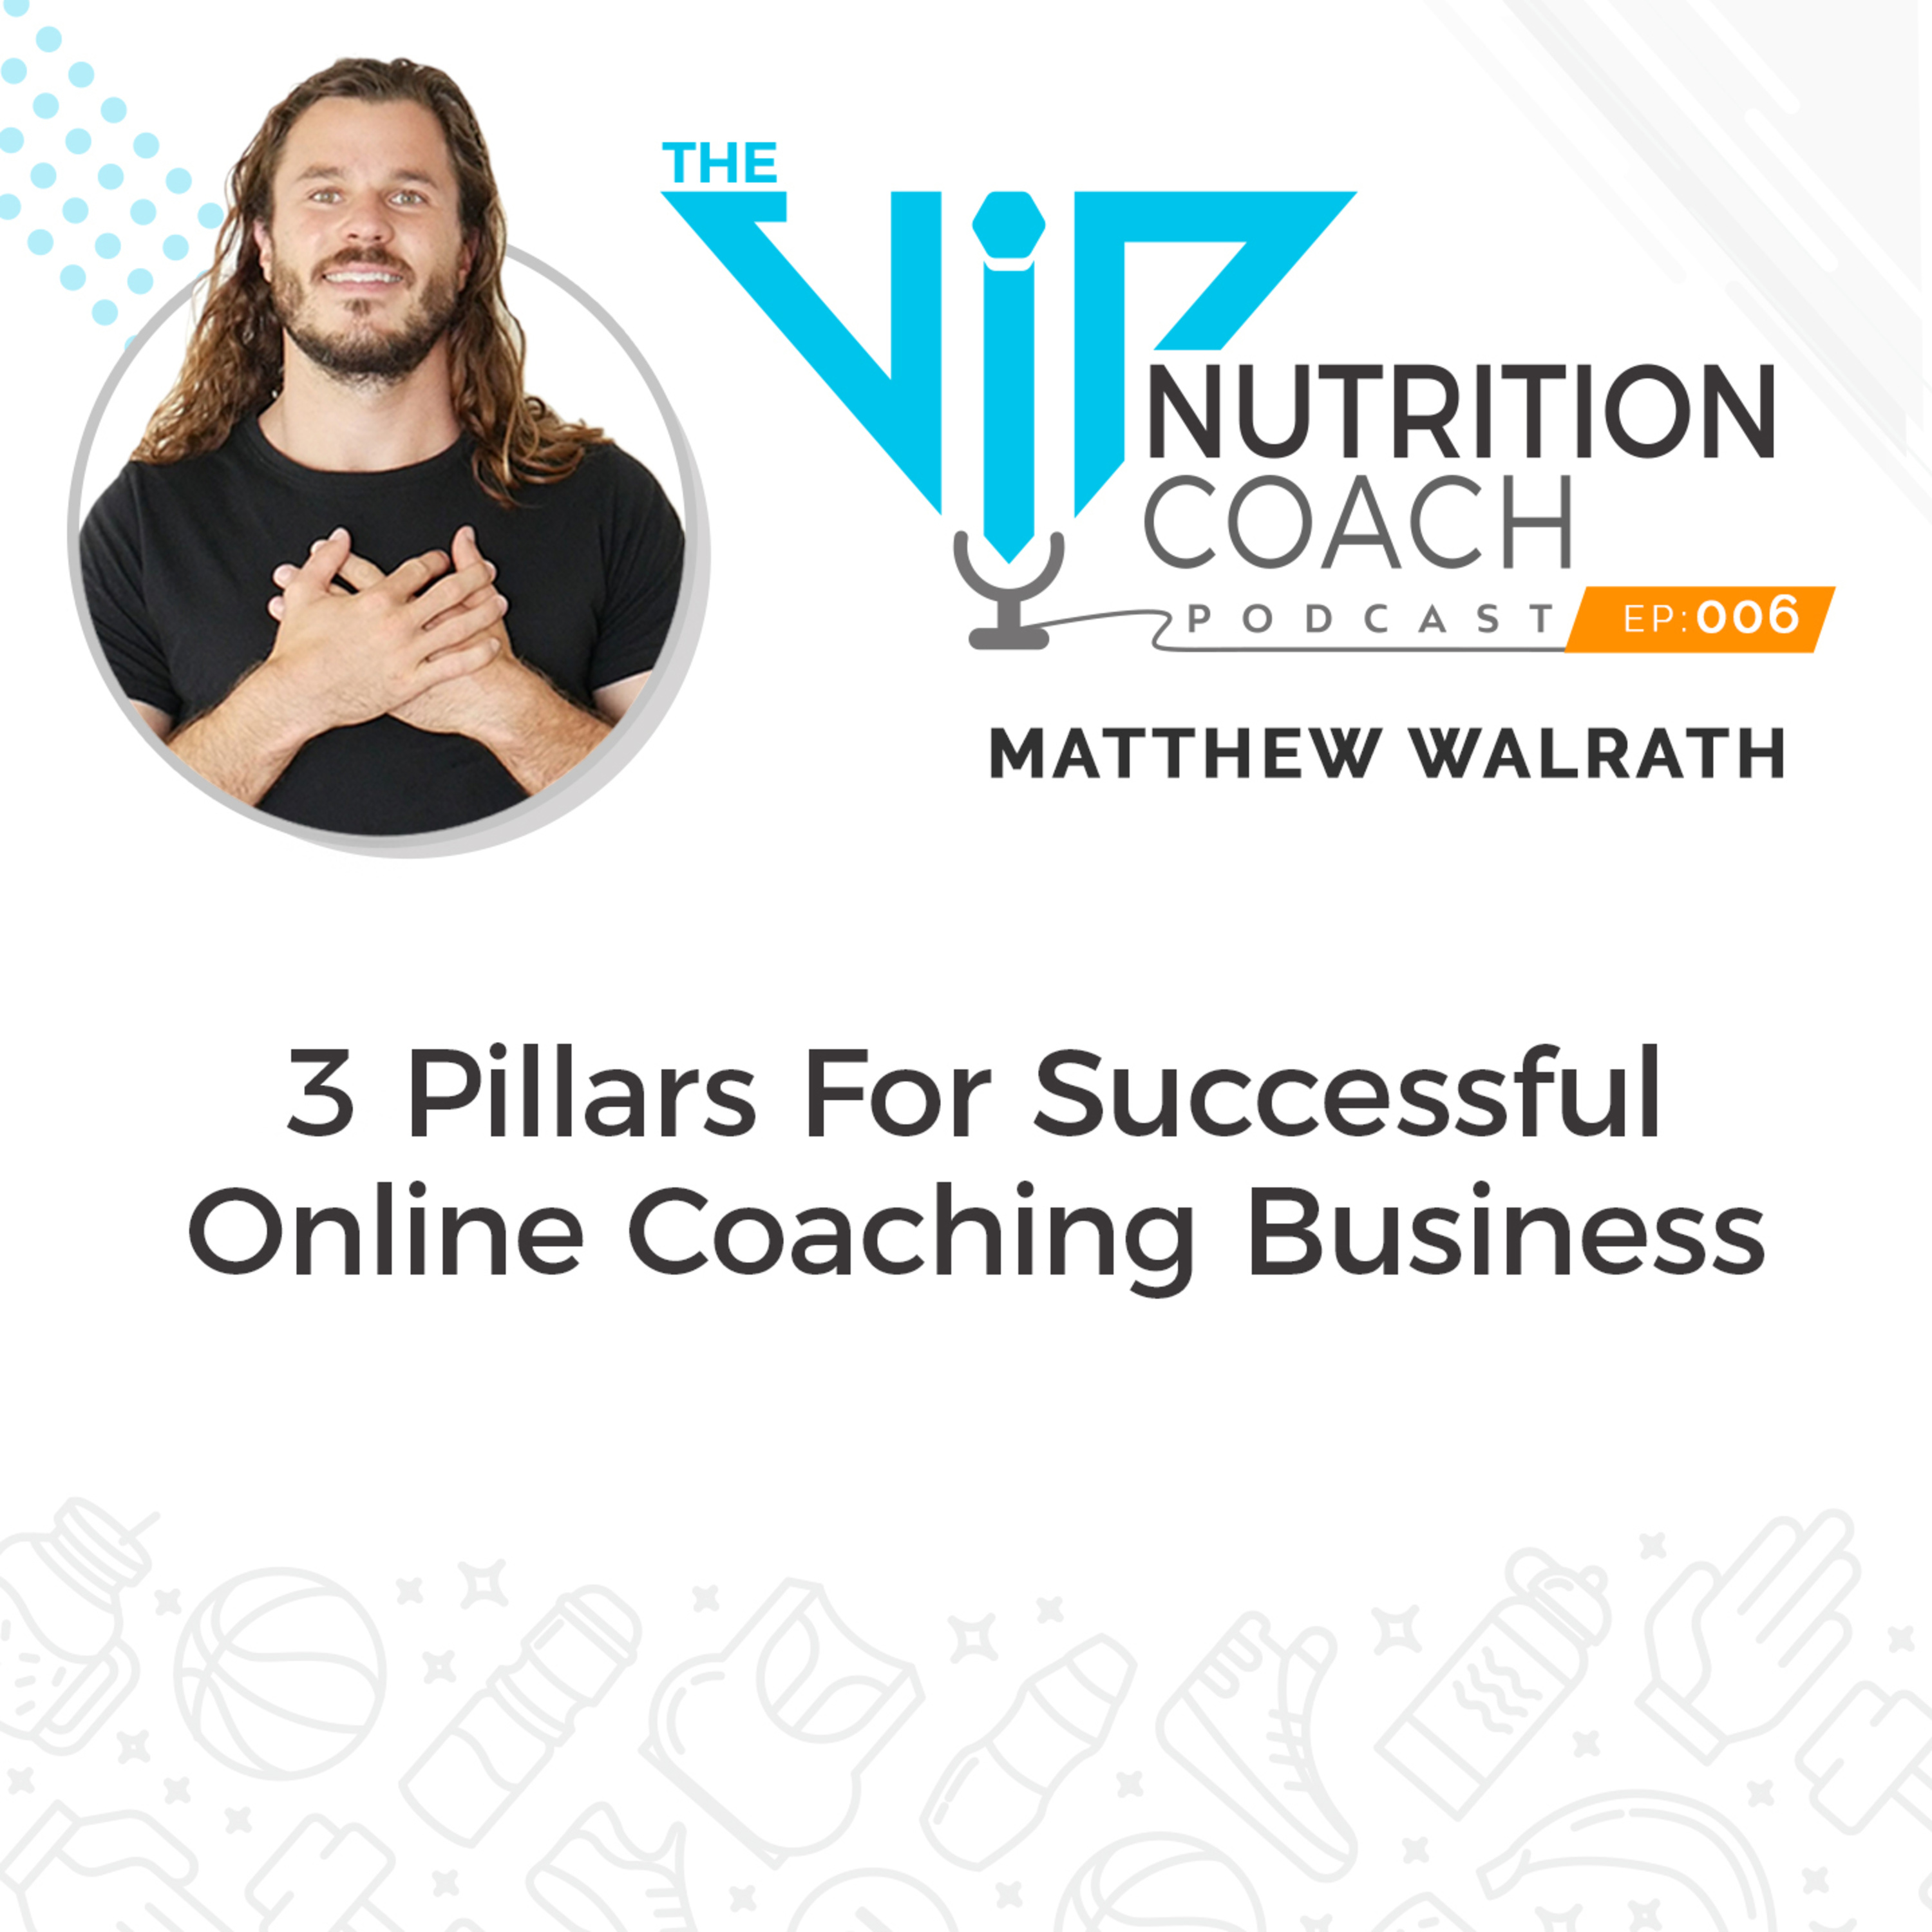 3 Pillars of a Successful Online Coaching Business